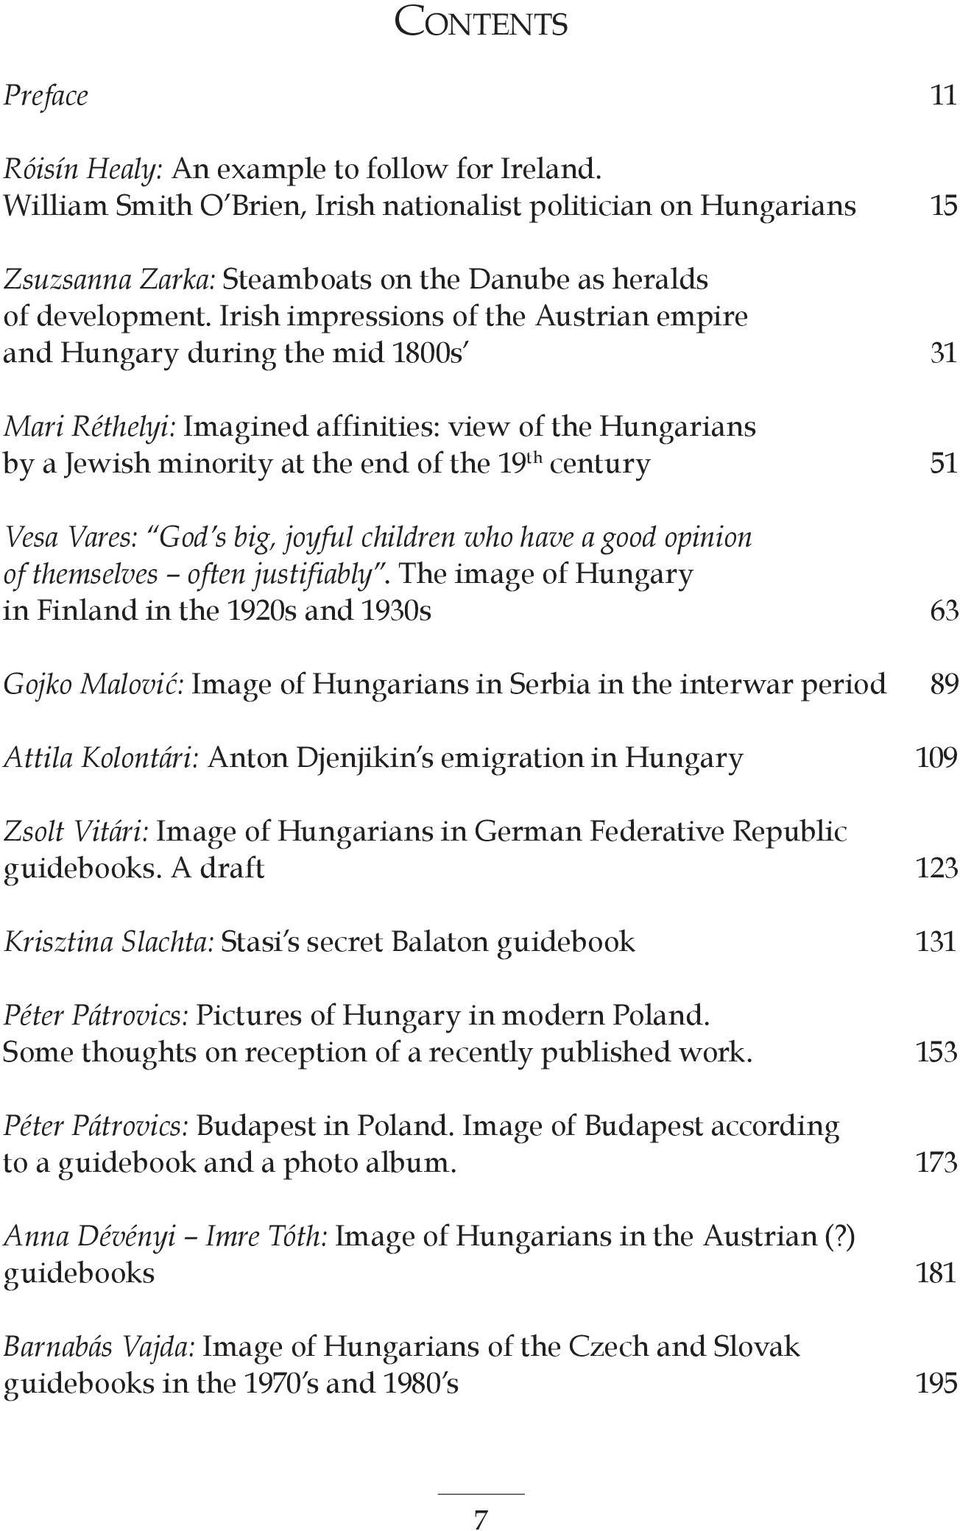 Irish impressions of the Austrian empire and Hungary during the mid 1800s 31 Mari Réthelyi: Imagined affinities: view of the Hungarians by a Jewish minority at the end of the 19 th century 51 Vesa